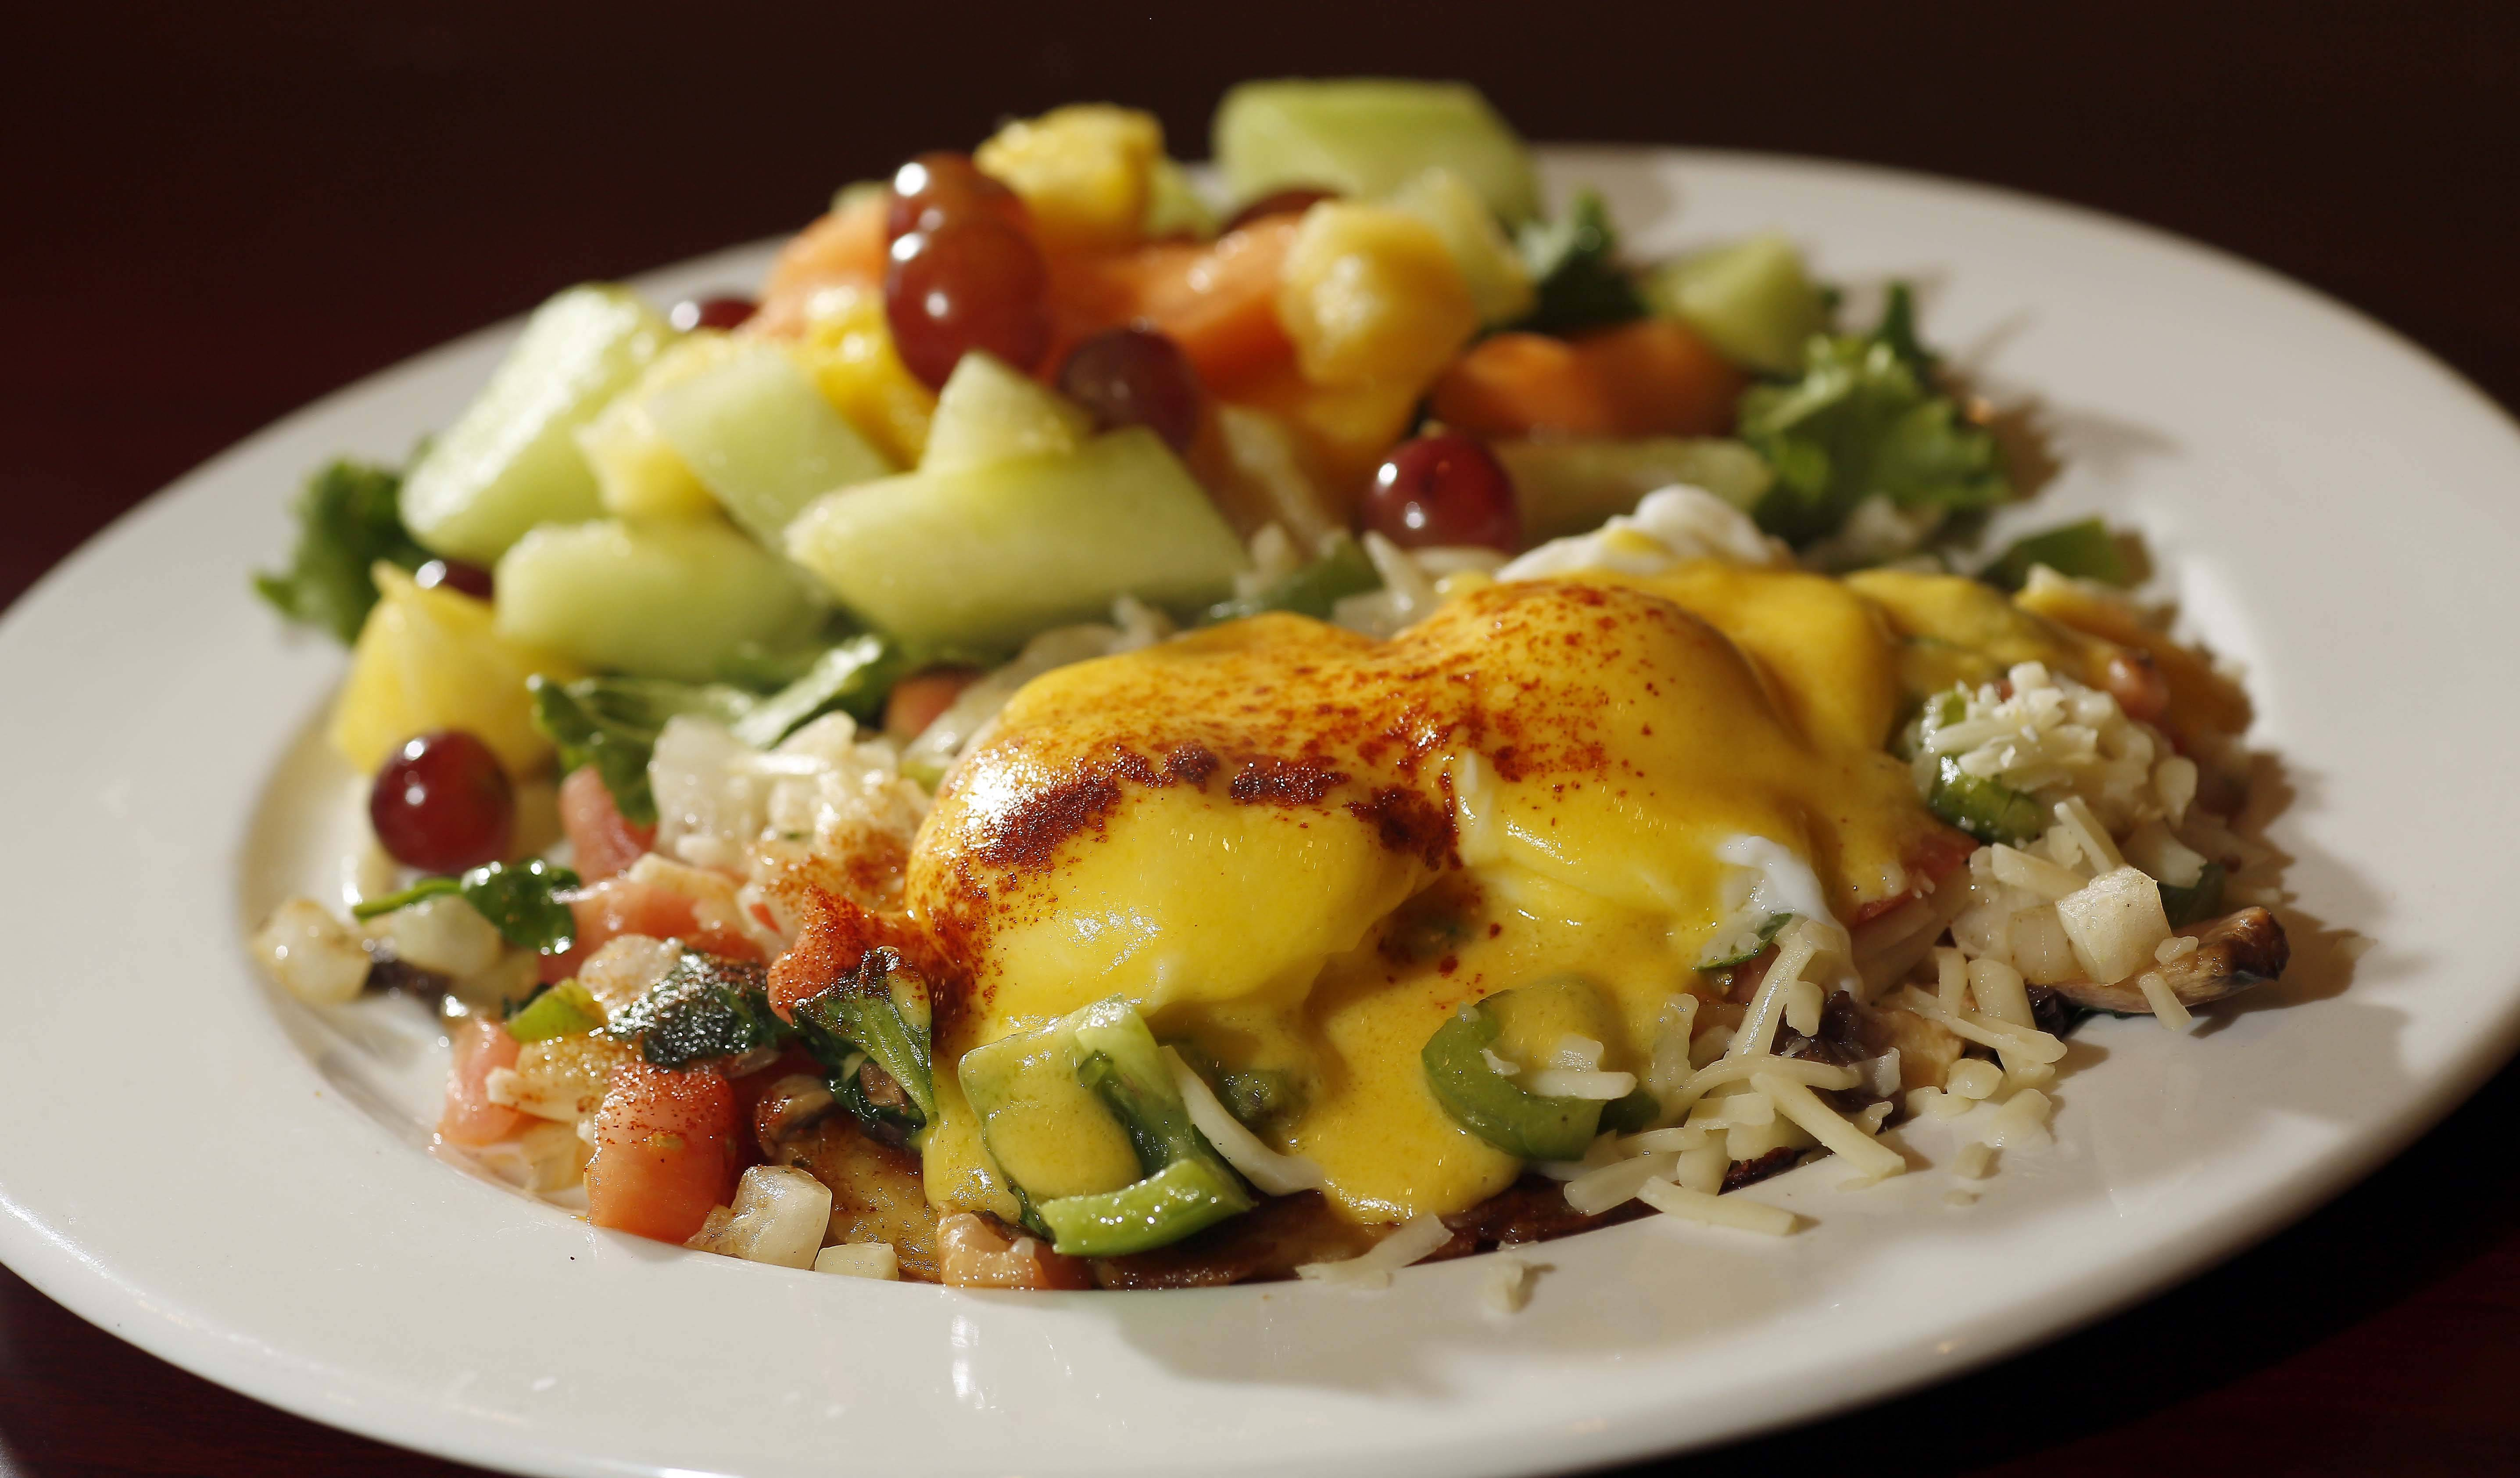 The veggie potato pancake is an inventive take on eggs Benedict at Brunch Cafe in St. Charles.